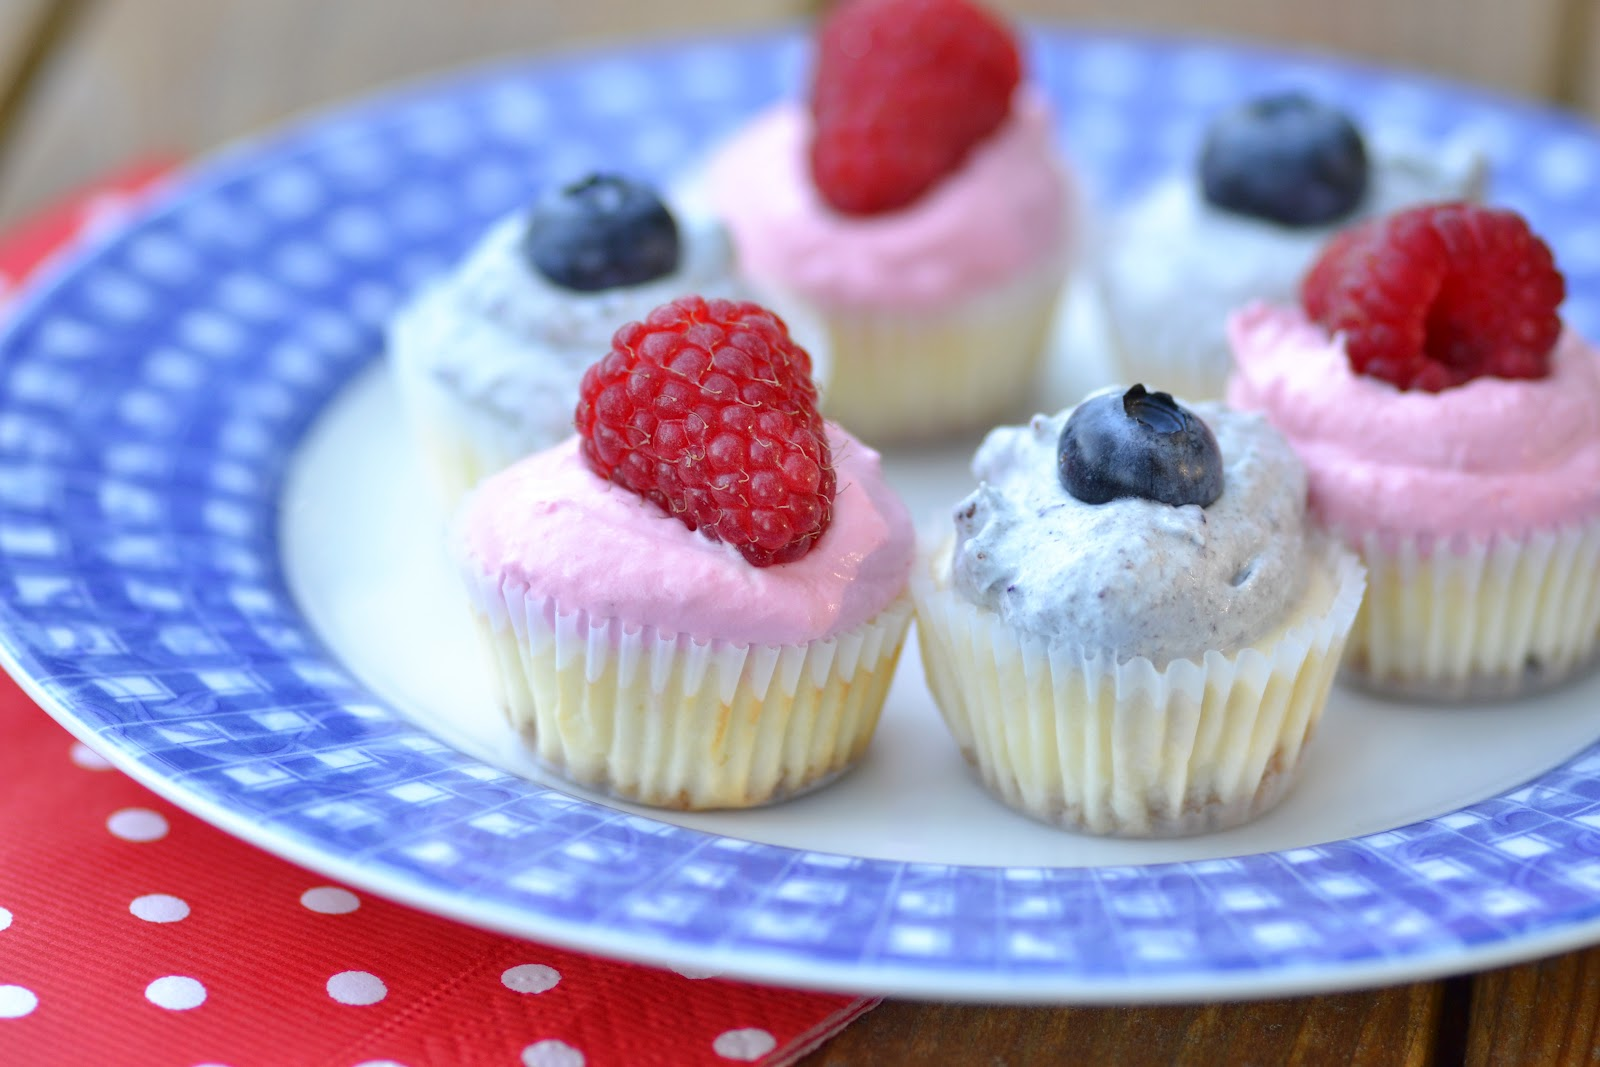 7 Photos of White Chocolate Raspberry Cheesecake Cupcakes